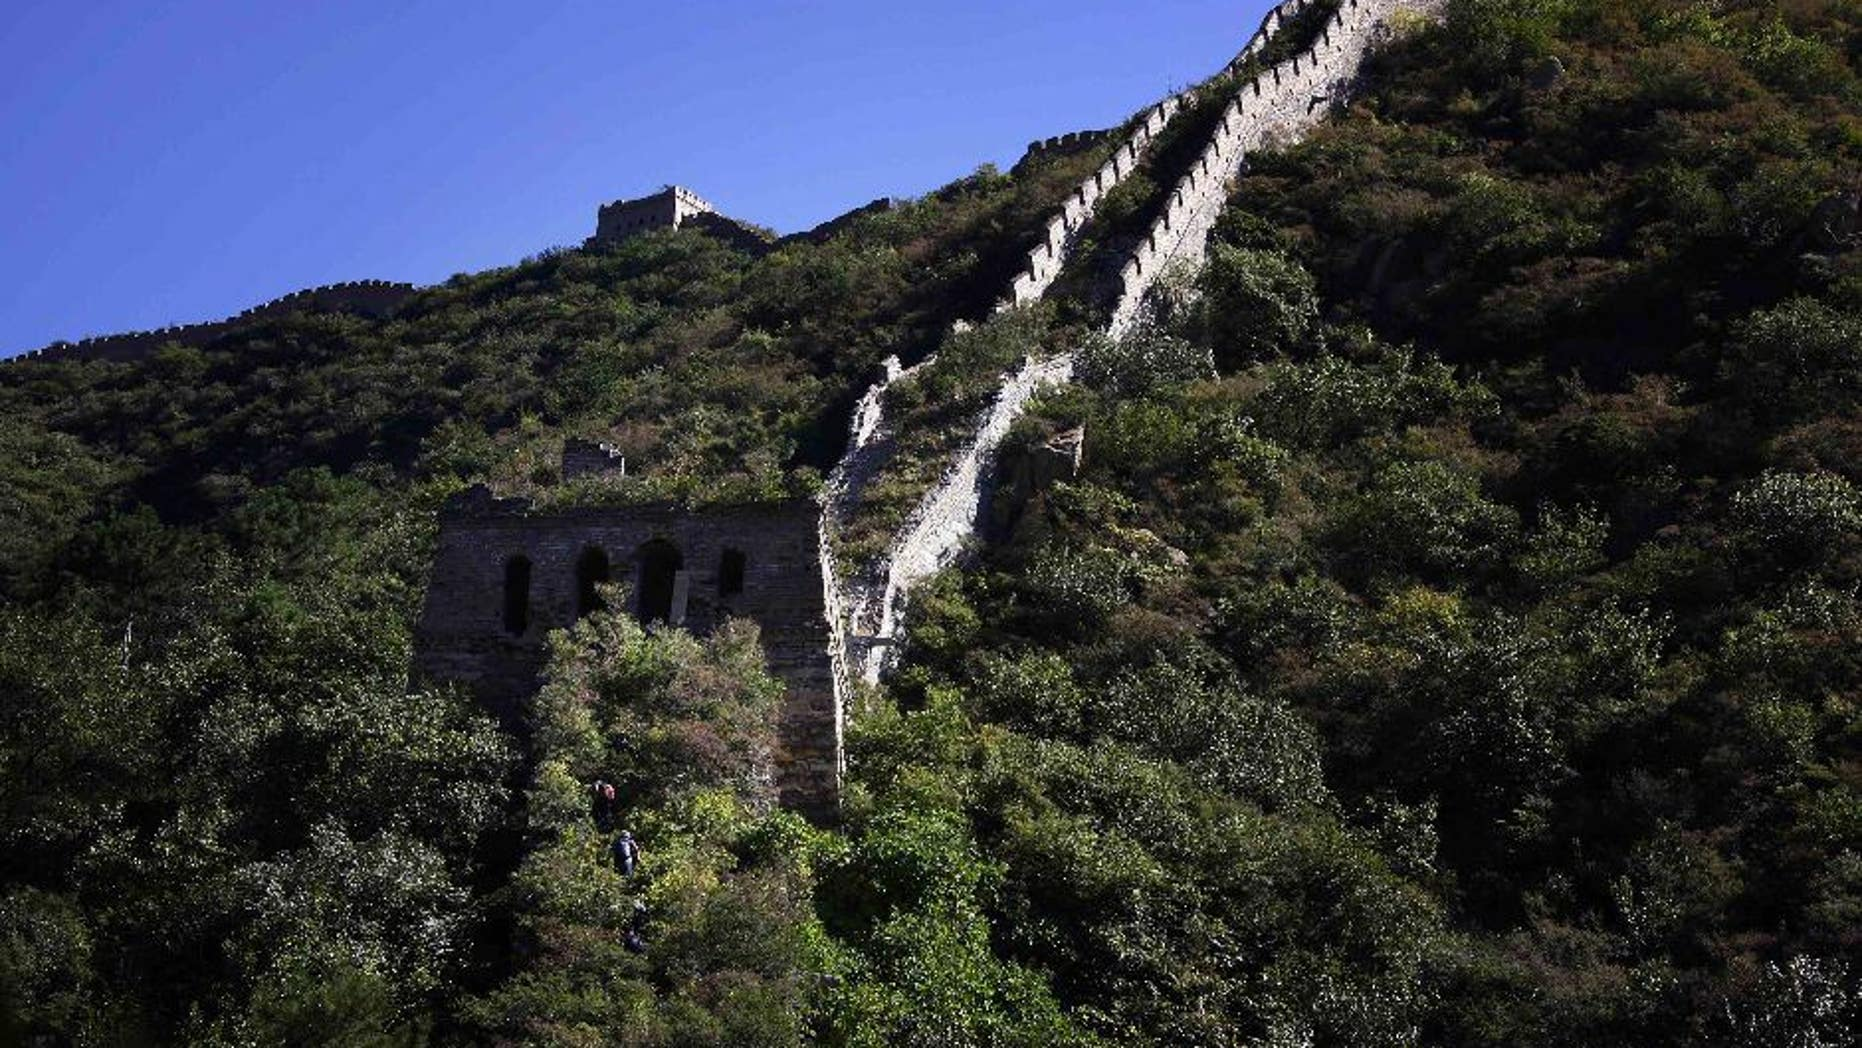 Chinese hikers make their way up an overgrown, hidden section of the Great Wall of China located near Xiang Shui Hu village.